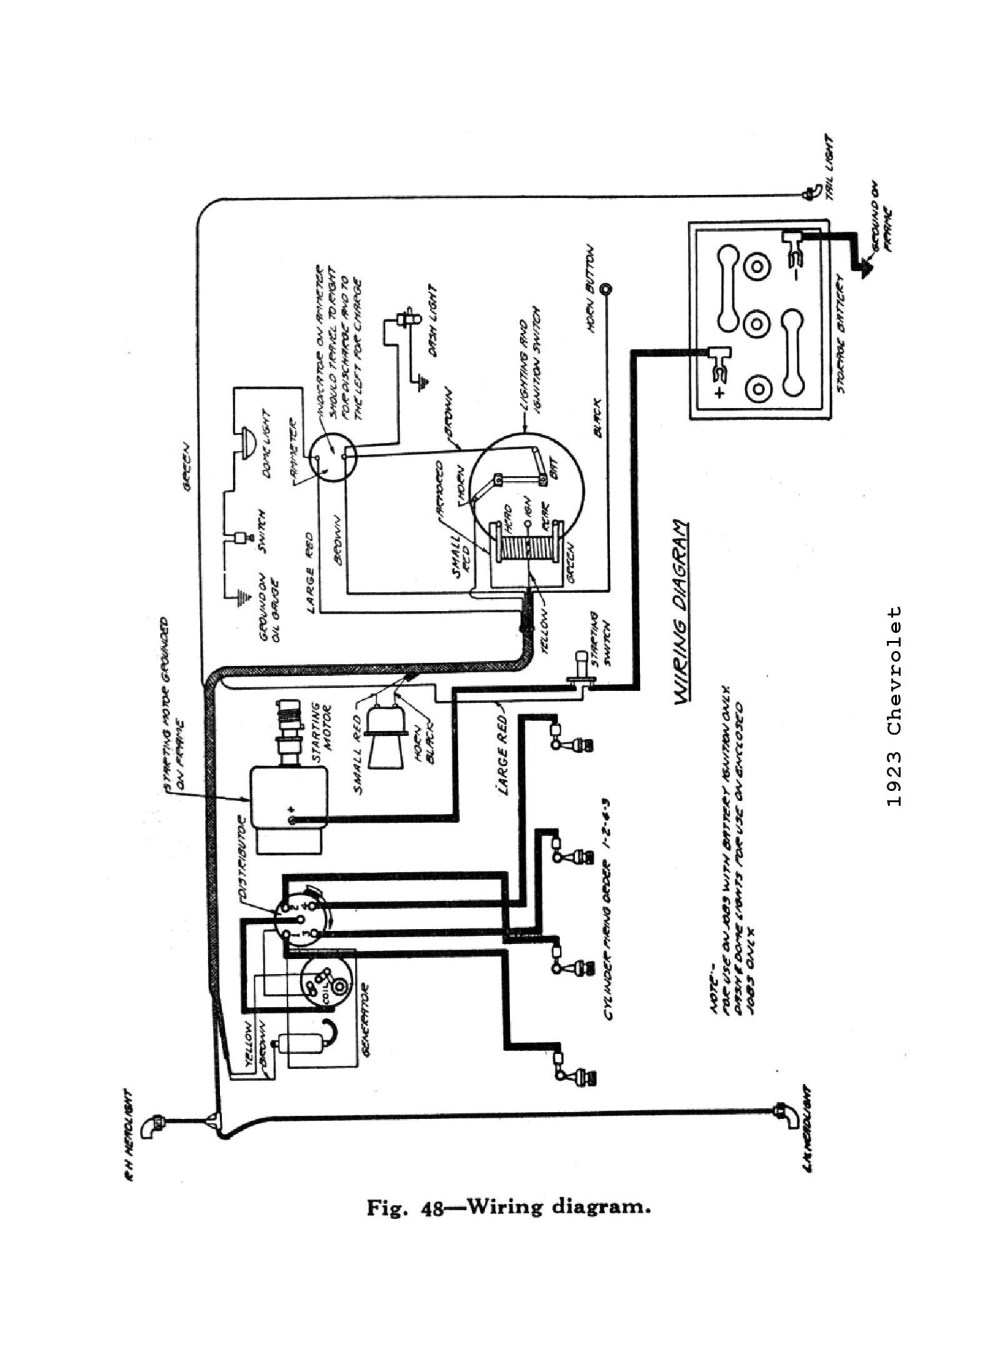 medium resolution of diagram of buick lucerne engine wiring library rh 57 winebottlecrafts org 2001 buick lesabre engine wiring harness 1969 buick skylark engine wiring harness